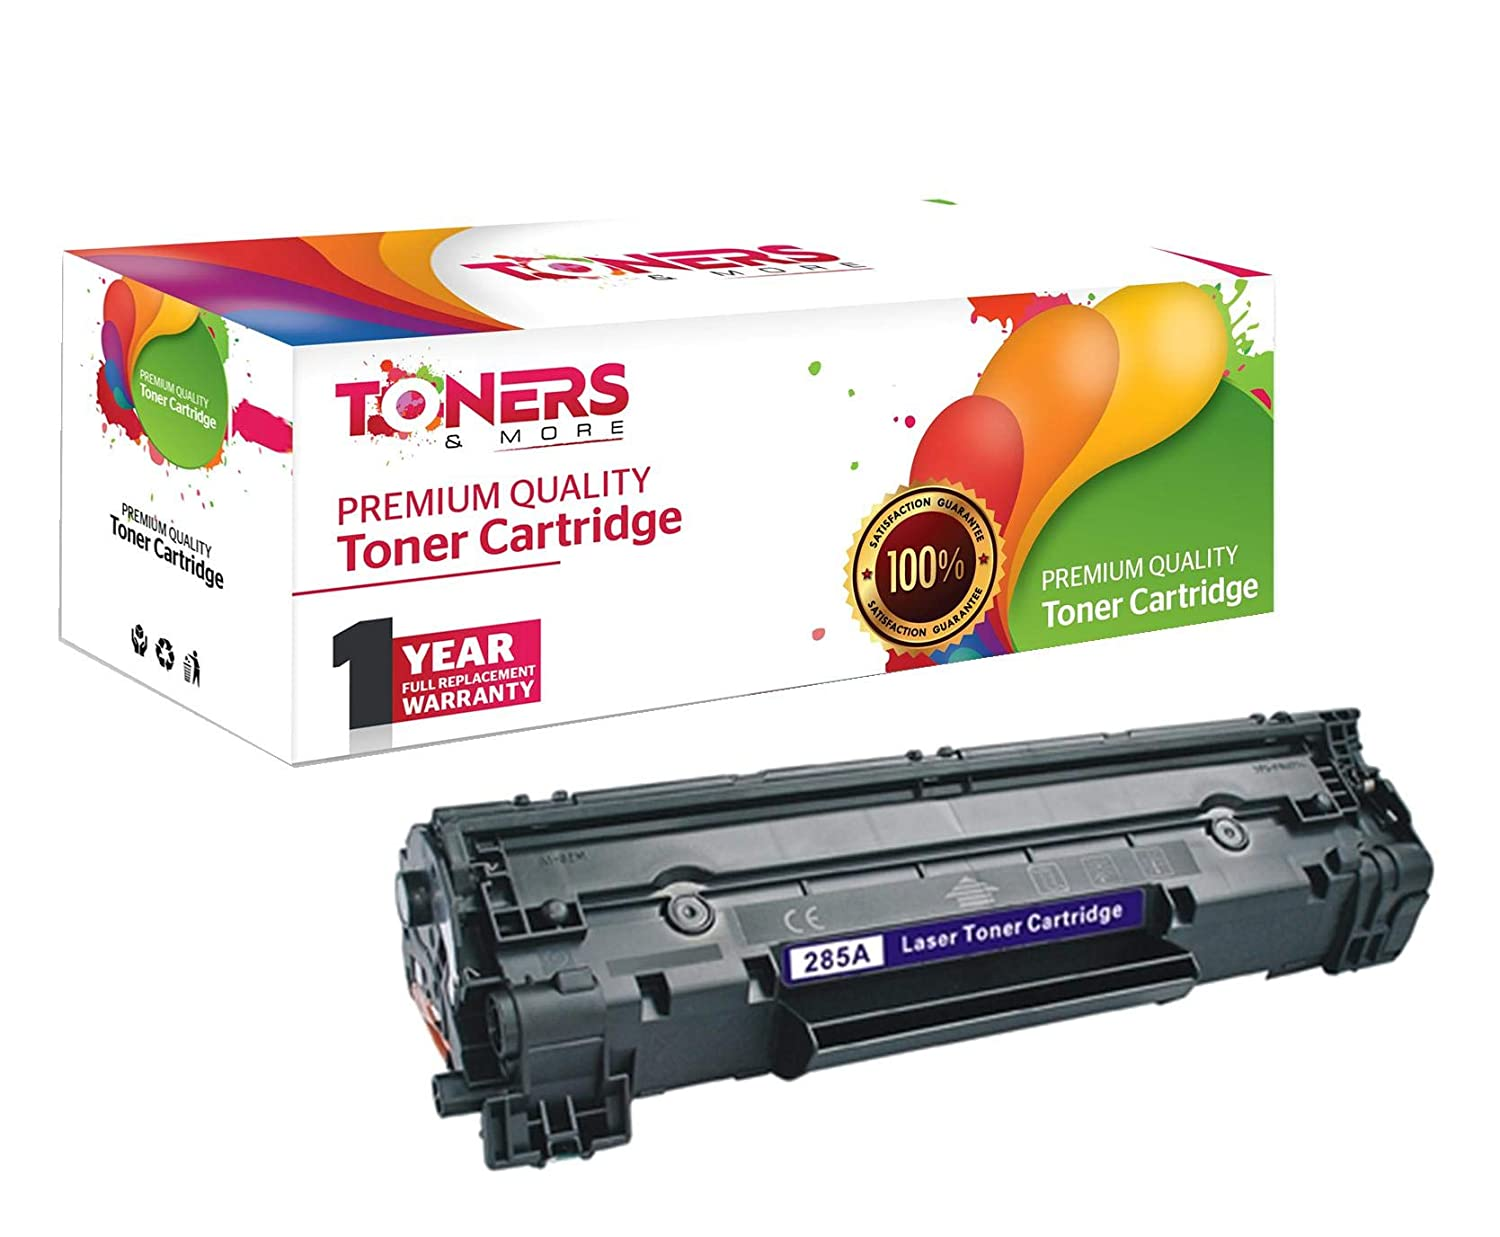 Toners & More ® Compatible Laser Toner Cartridge for Hewlett Packard HP CE285A 85A 285A Works with HP LaserJet M1132, P1102, P1102W, Pro M1210, Pro M1212nf, Pro M1217nfw MFP - 1,600 Page Yield 6852665